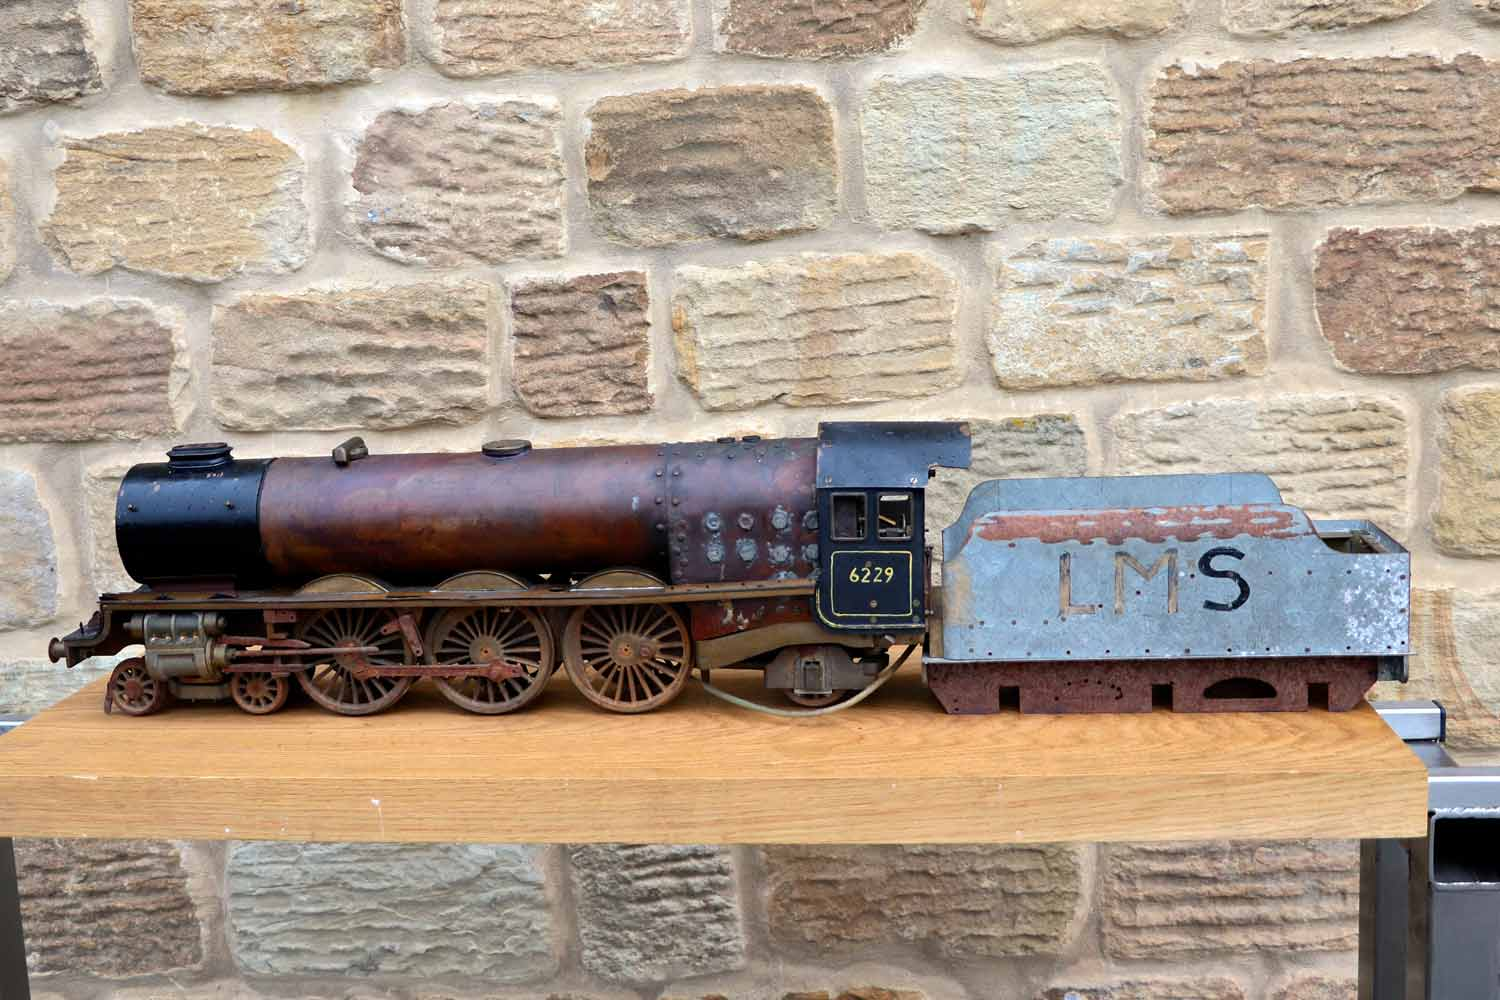 test 2-and-a-half-inch-gauge-LMS-Duchess-live-steam-locomotive-for-sale-01